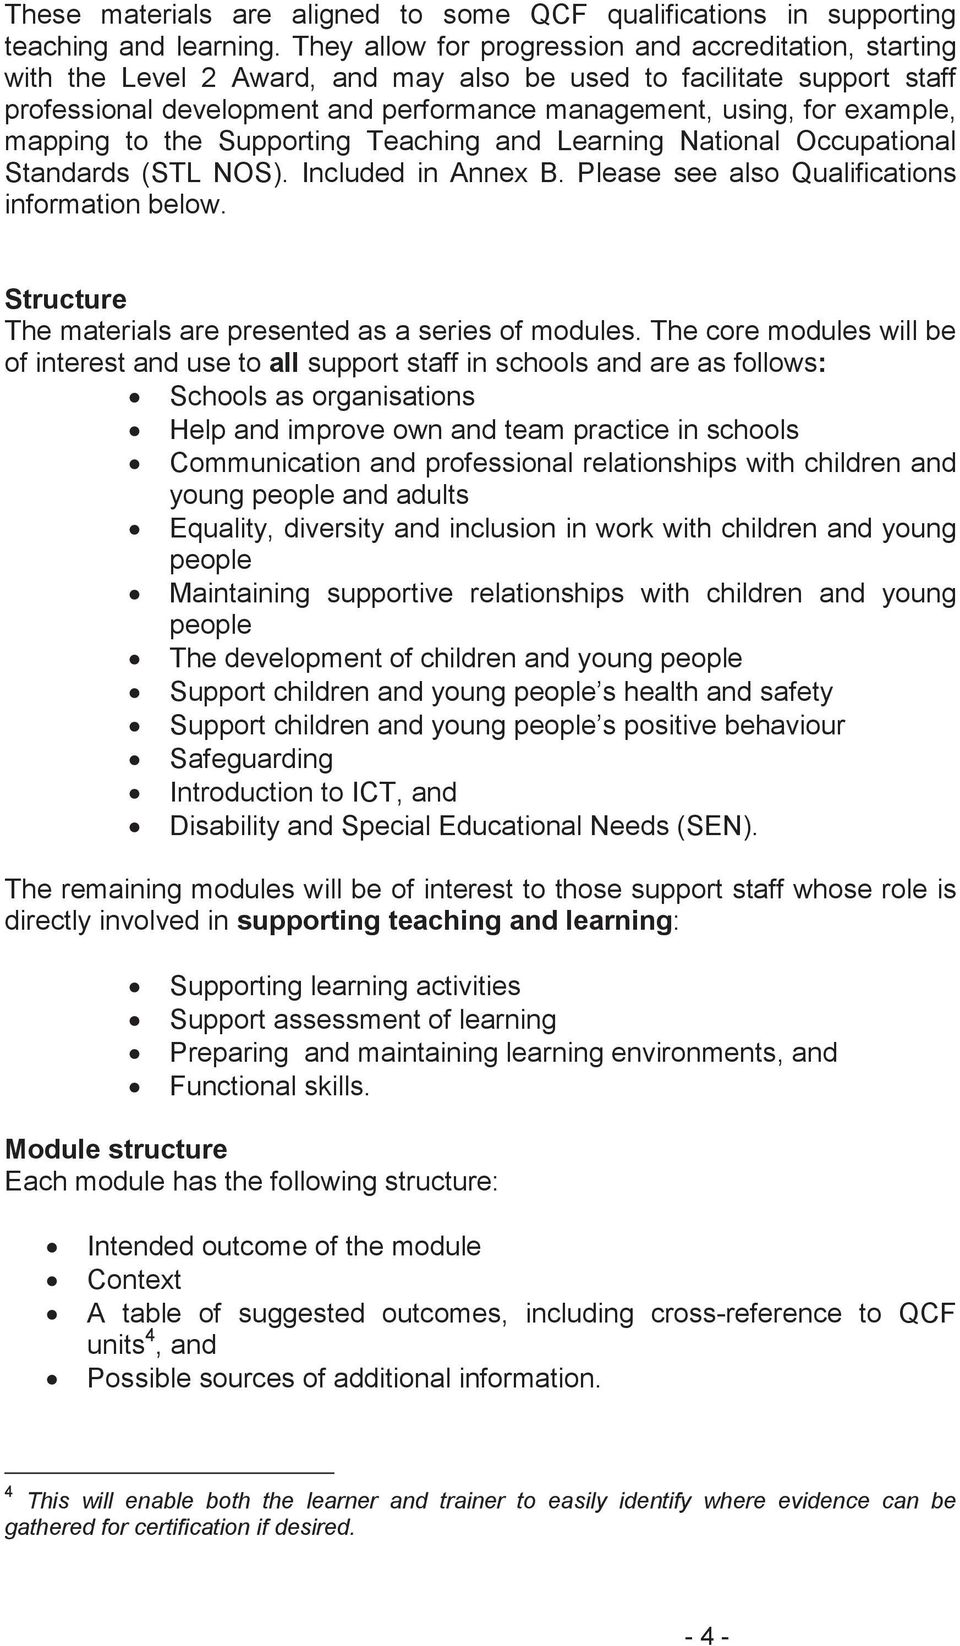 mapping to the Supporting Teaching and Learning National Occupational Standards (STL NOS). Included in Anne B. Please see also Qualifications information below.